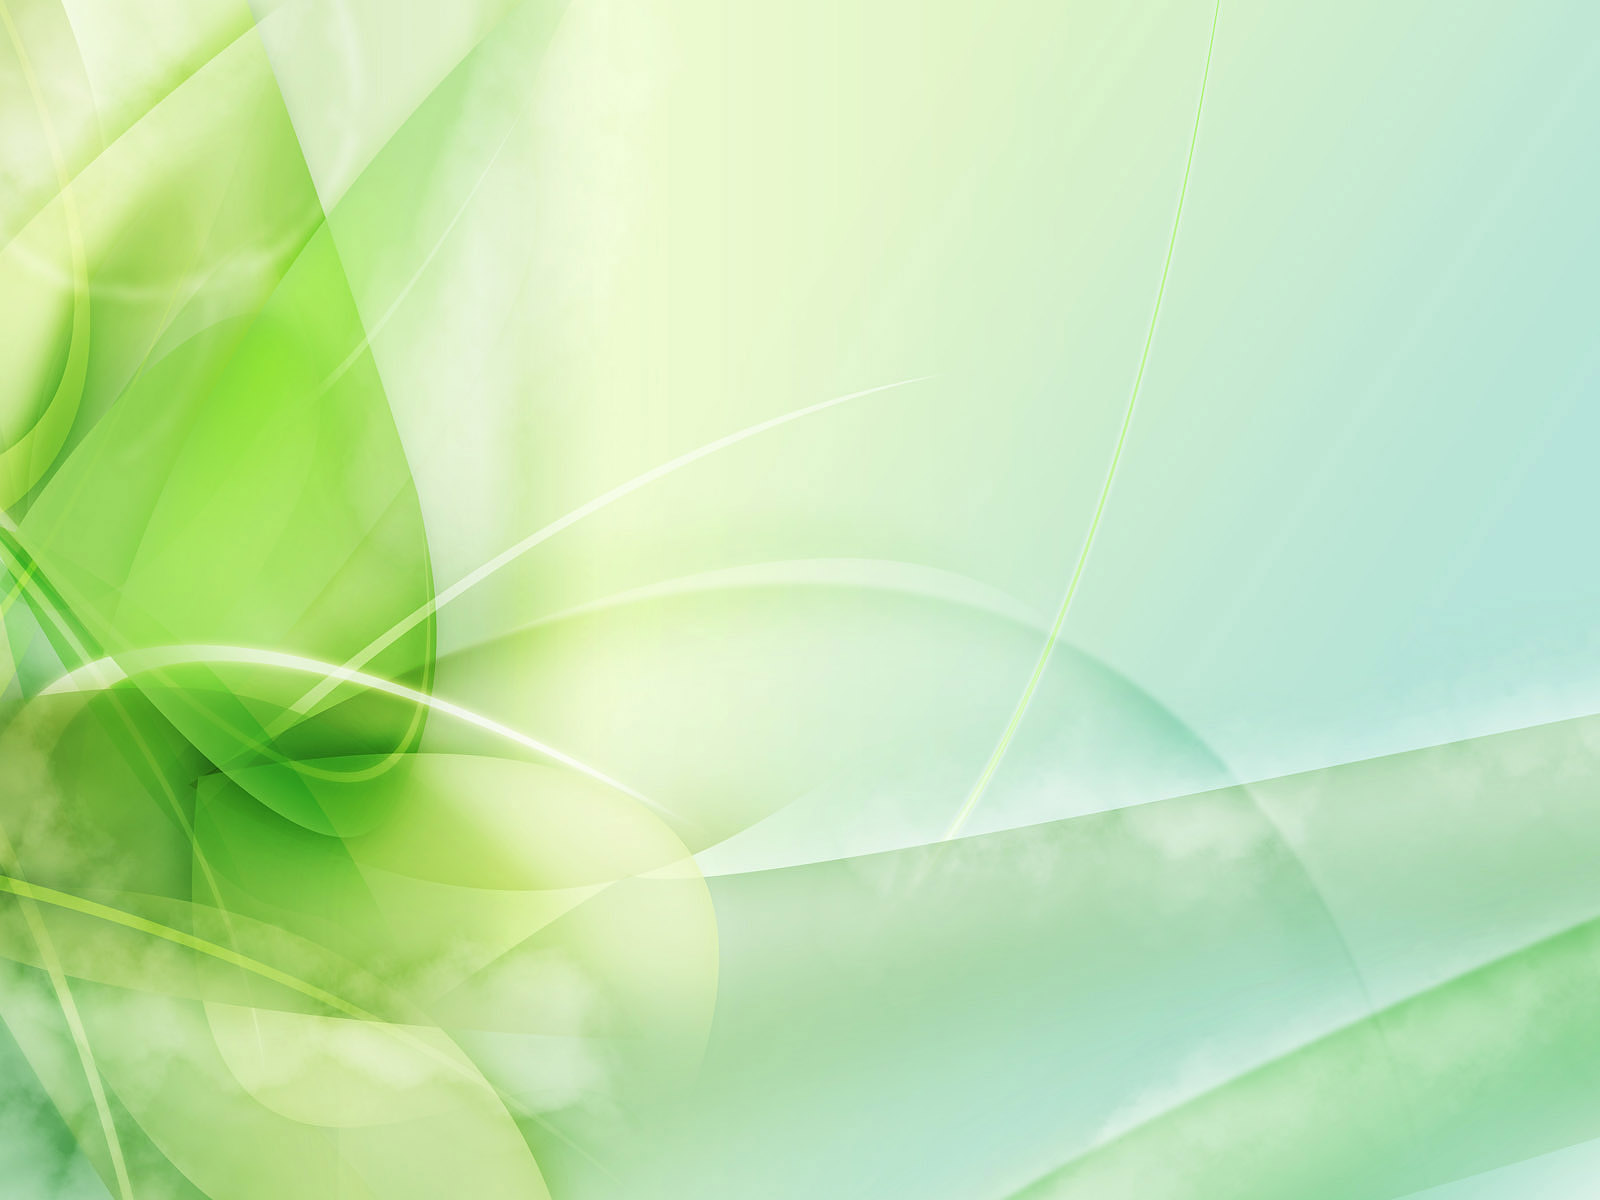 Green abstract picture for your Windows desktop PC with bright light and lines and stripes on